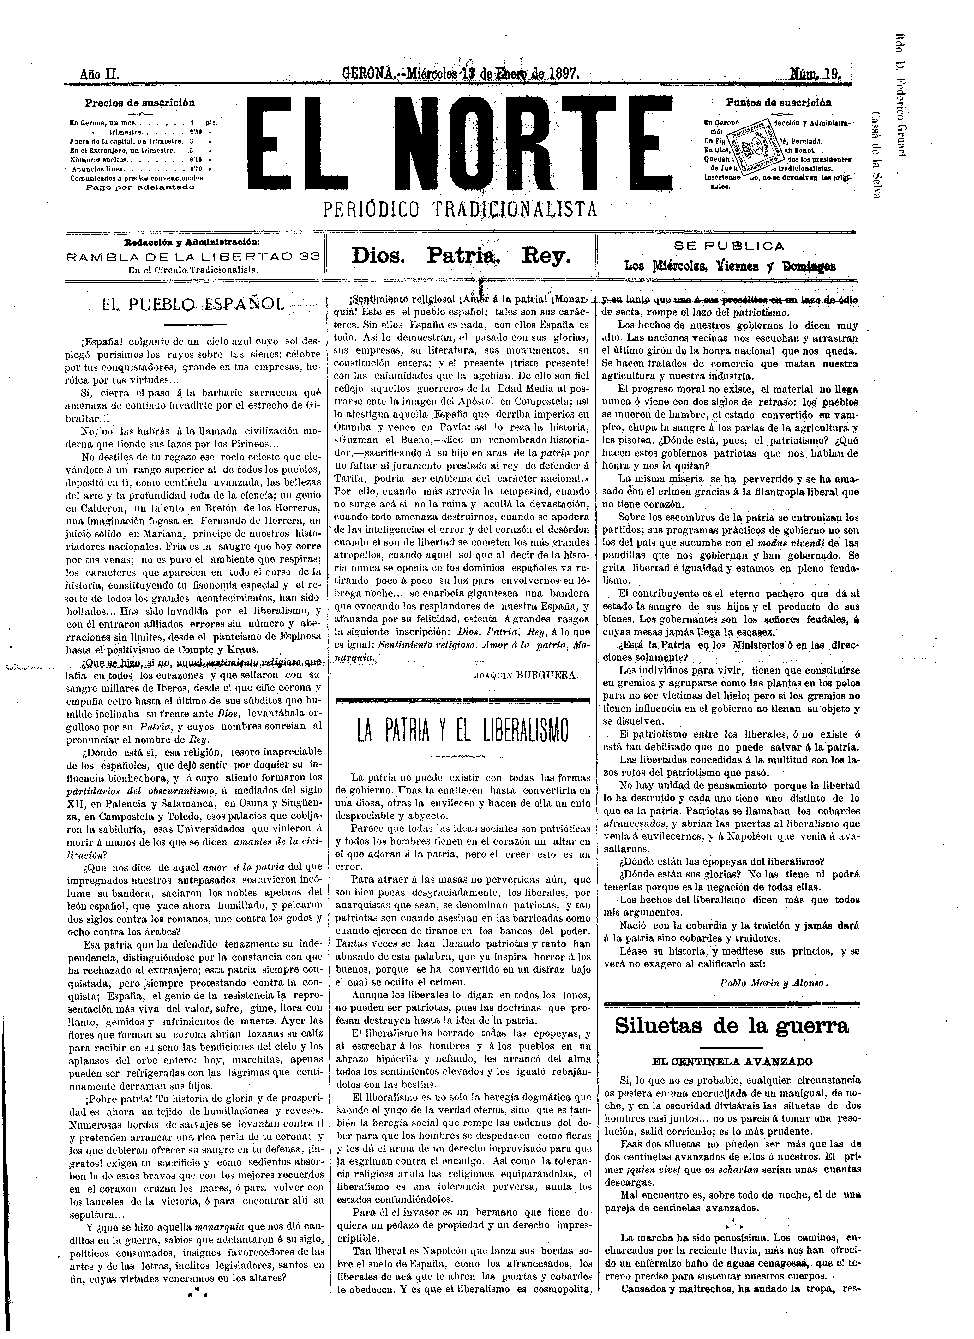 Norte, El. 13/1/1897. [Issue]